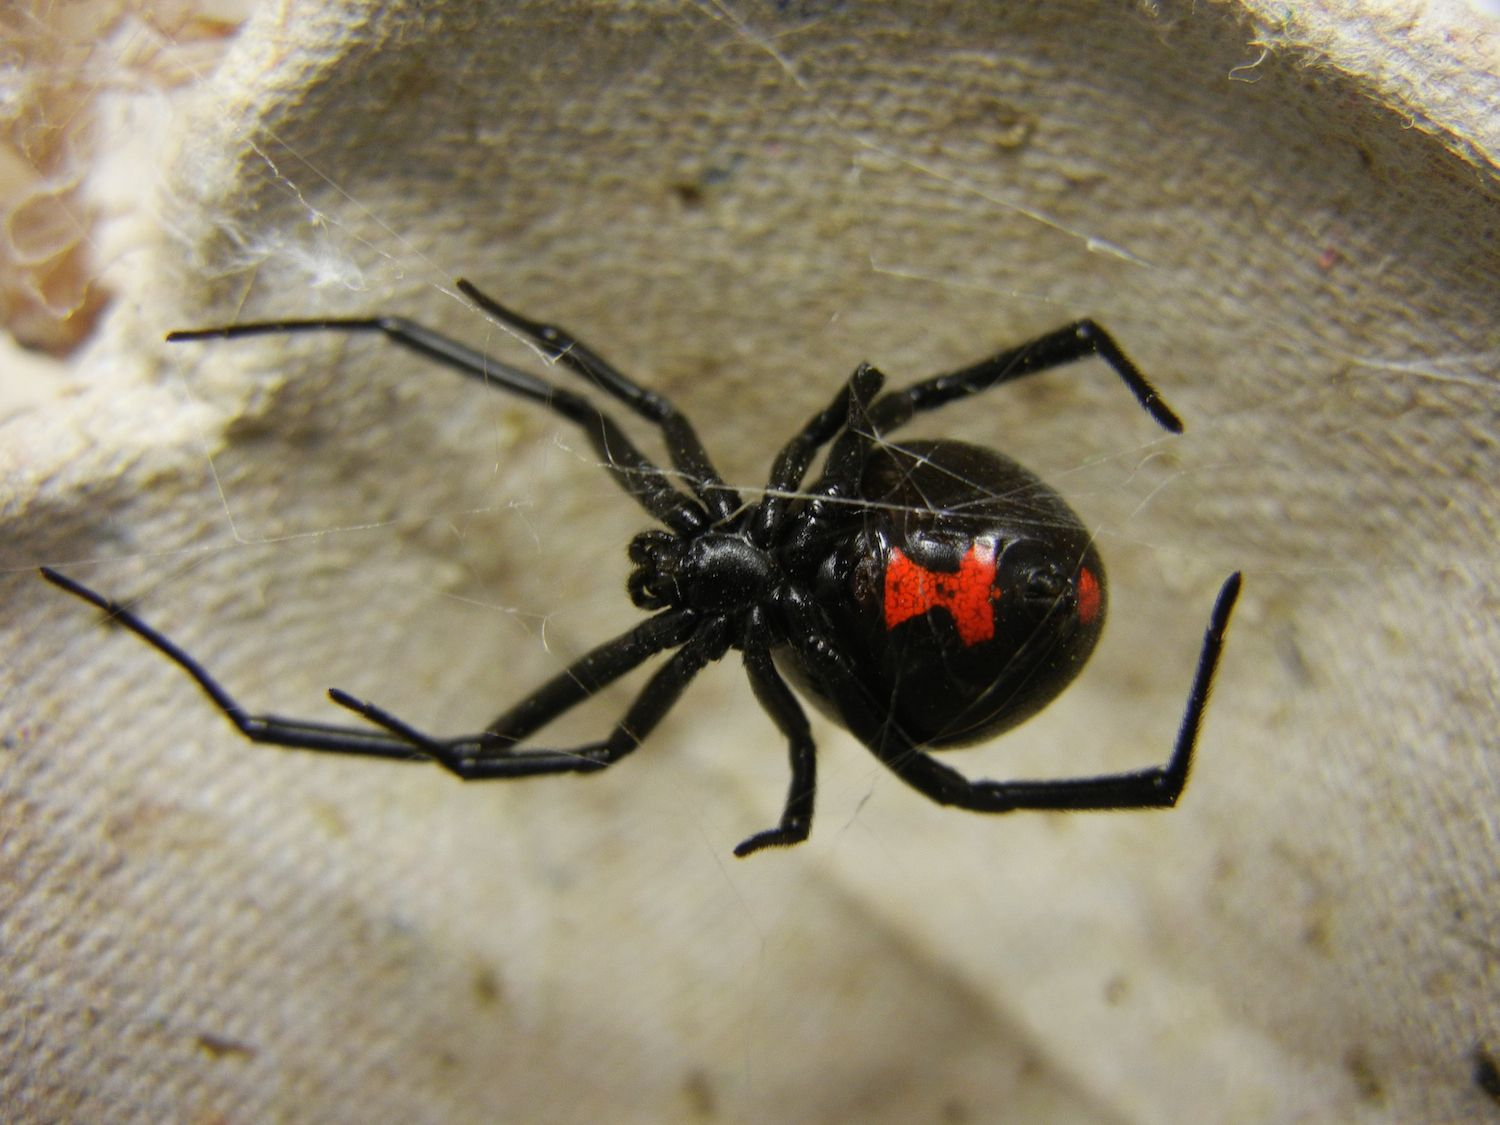 How To Diagnose Black Widow Bites